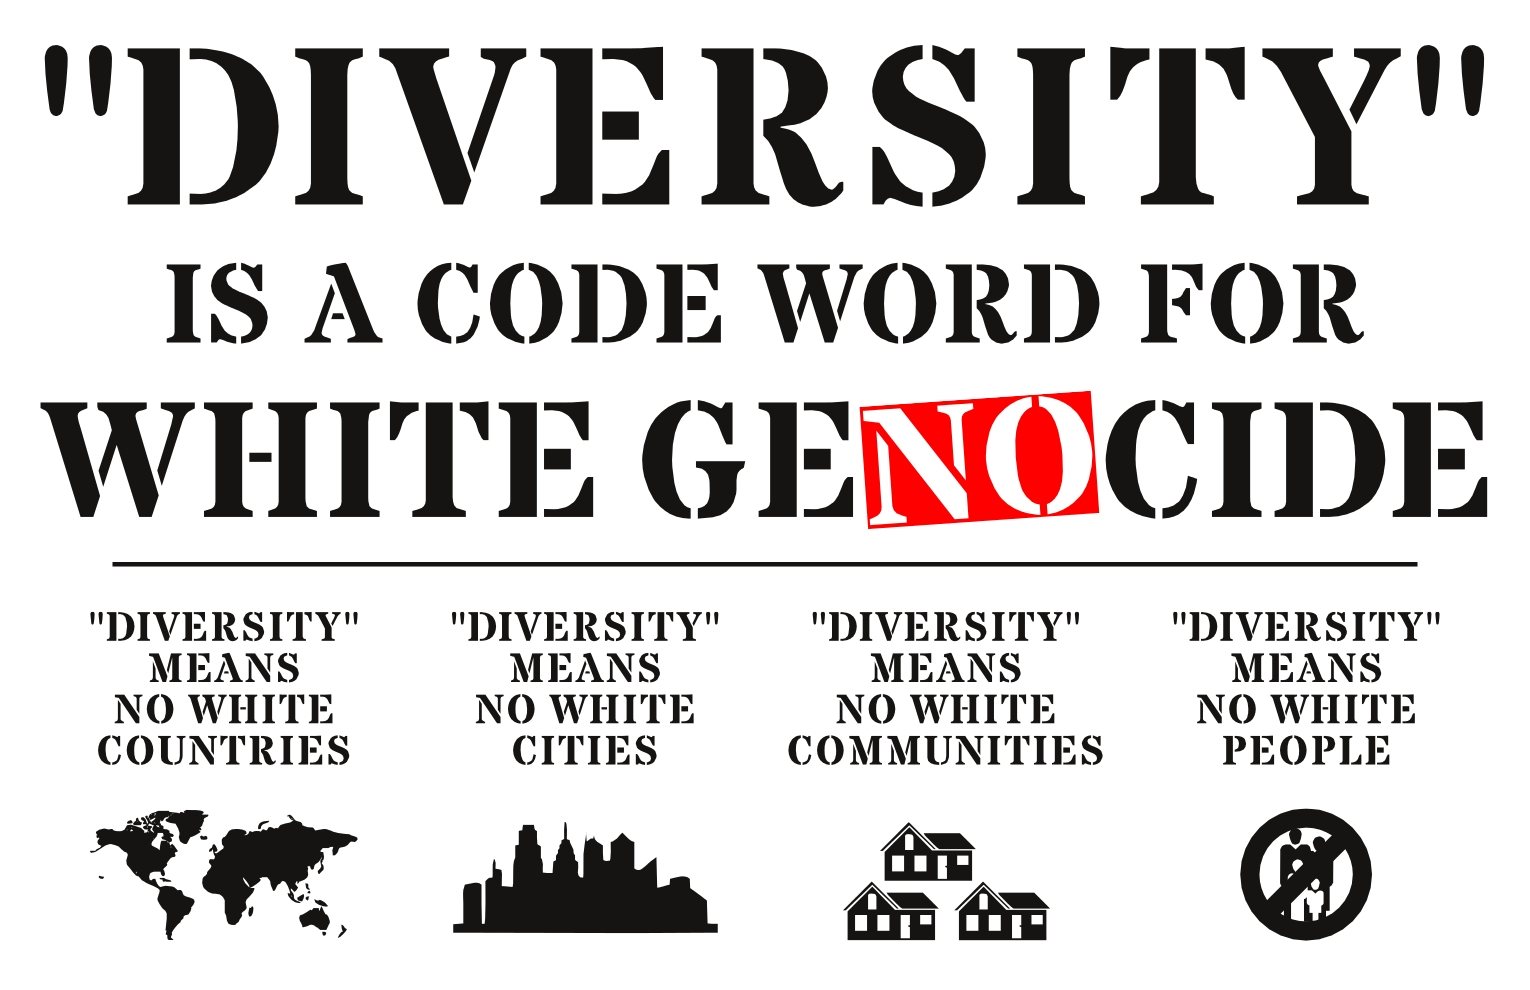 sample - diacwfwg means no white countries, cities, coummunities, people - sign - 11x17